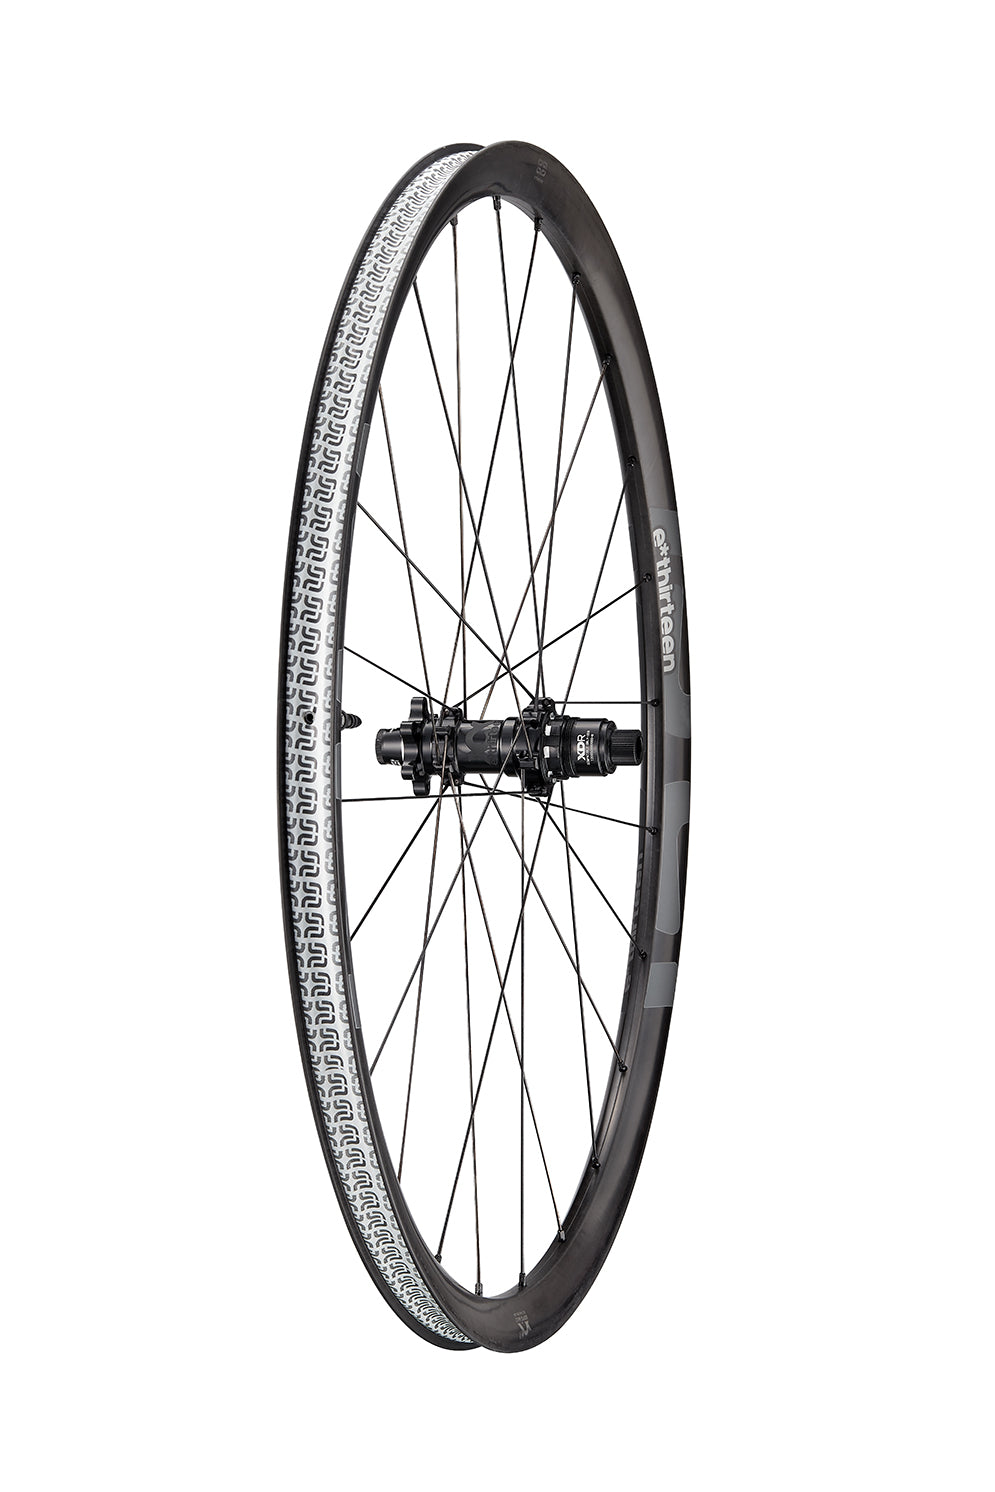 XCX Race Gravel Wheels